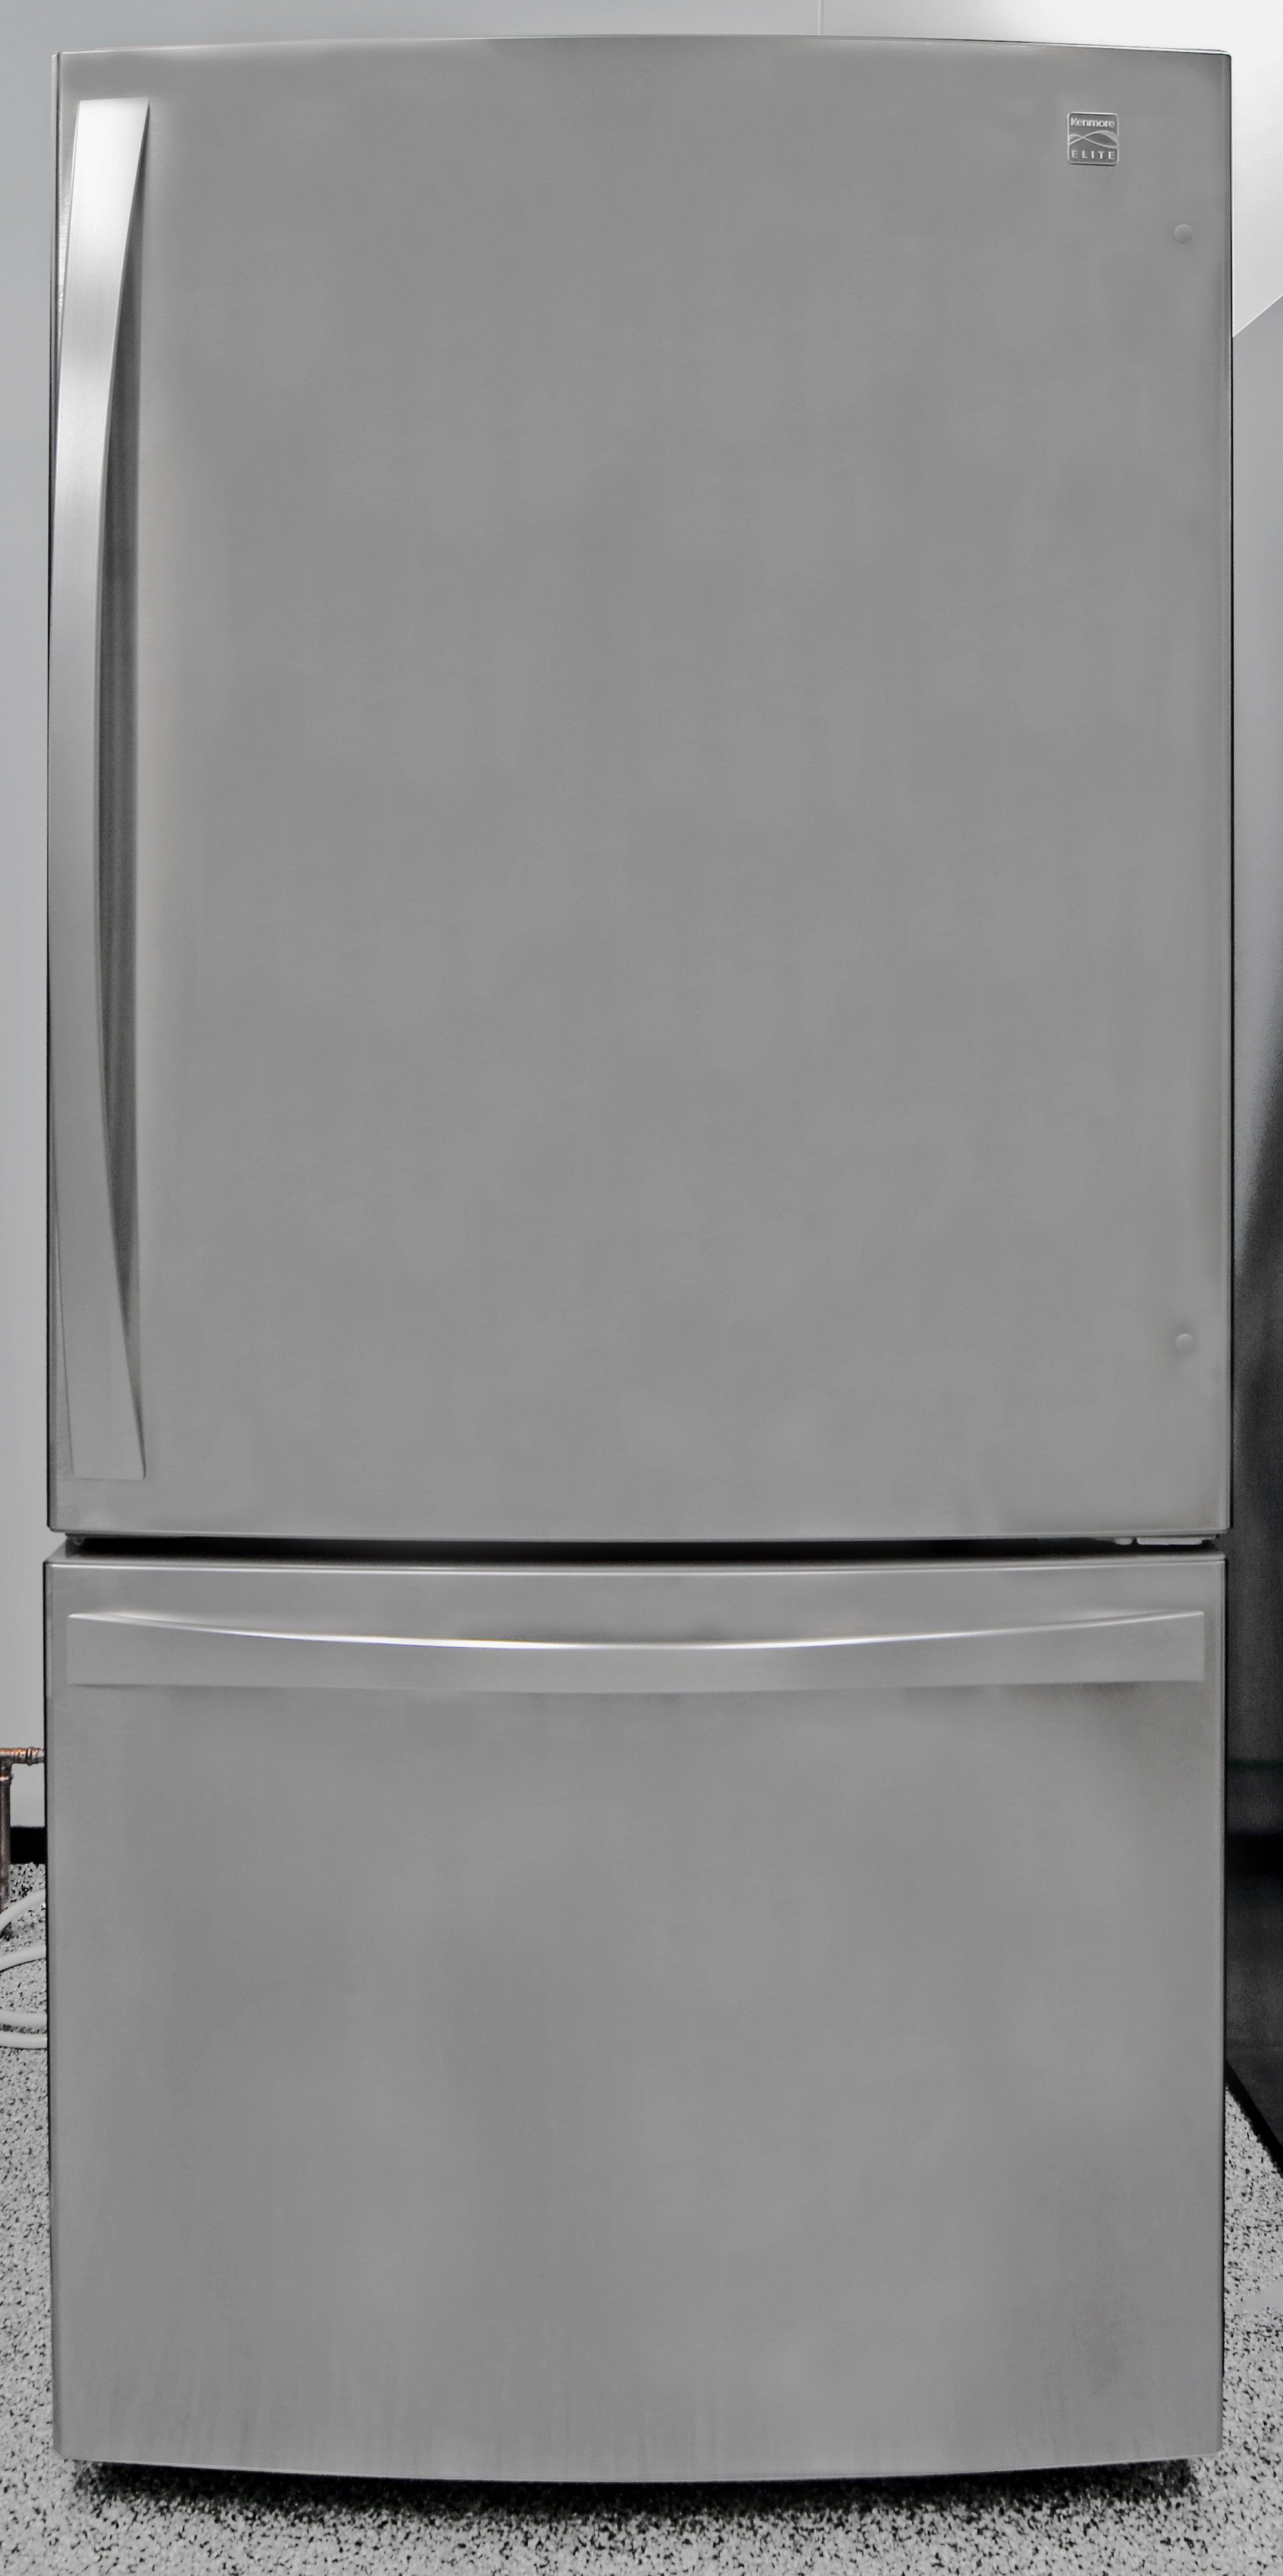 This bottom freezer is a very sizable—and expensive—product.